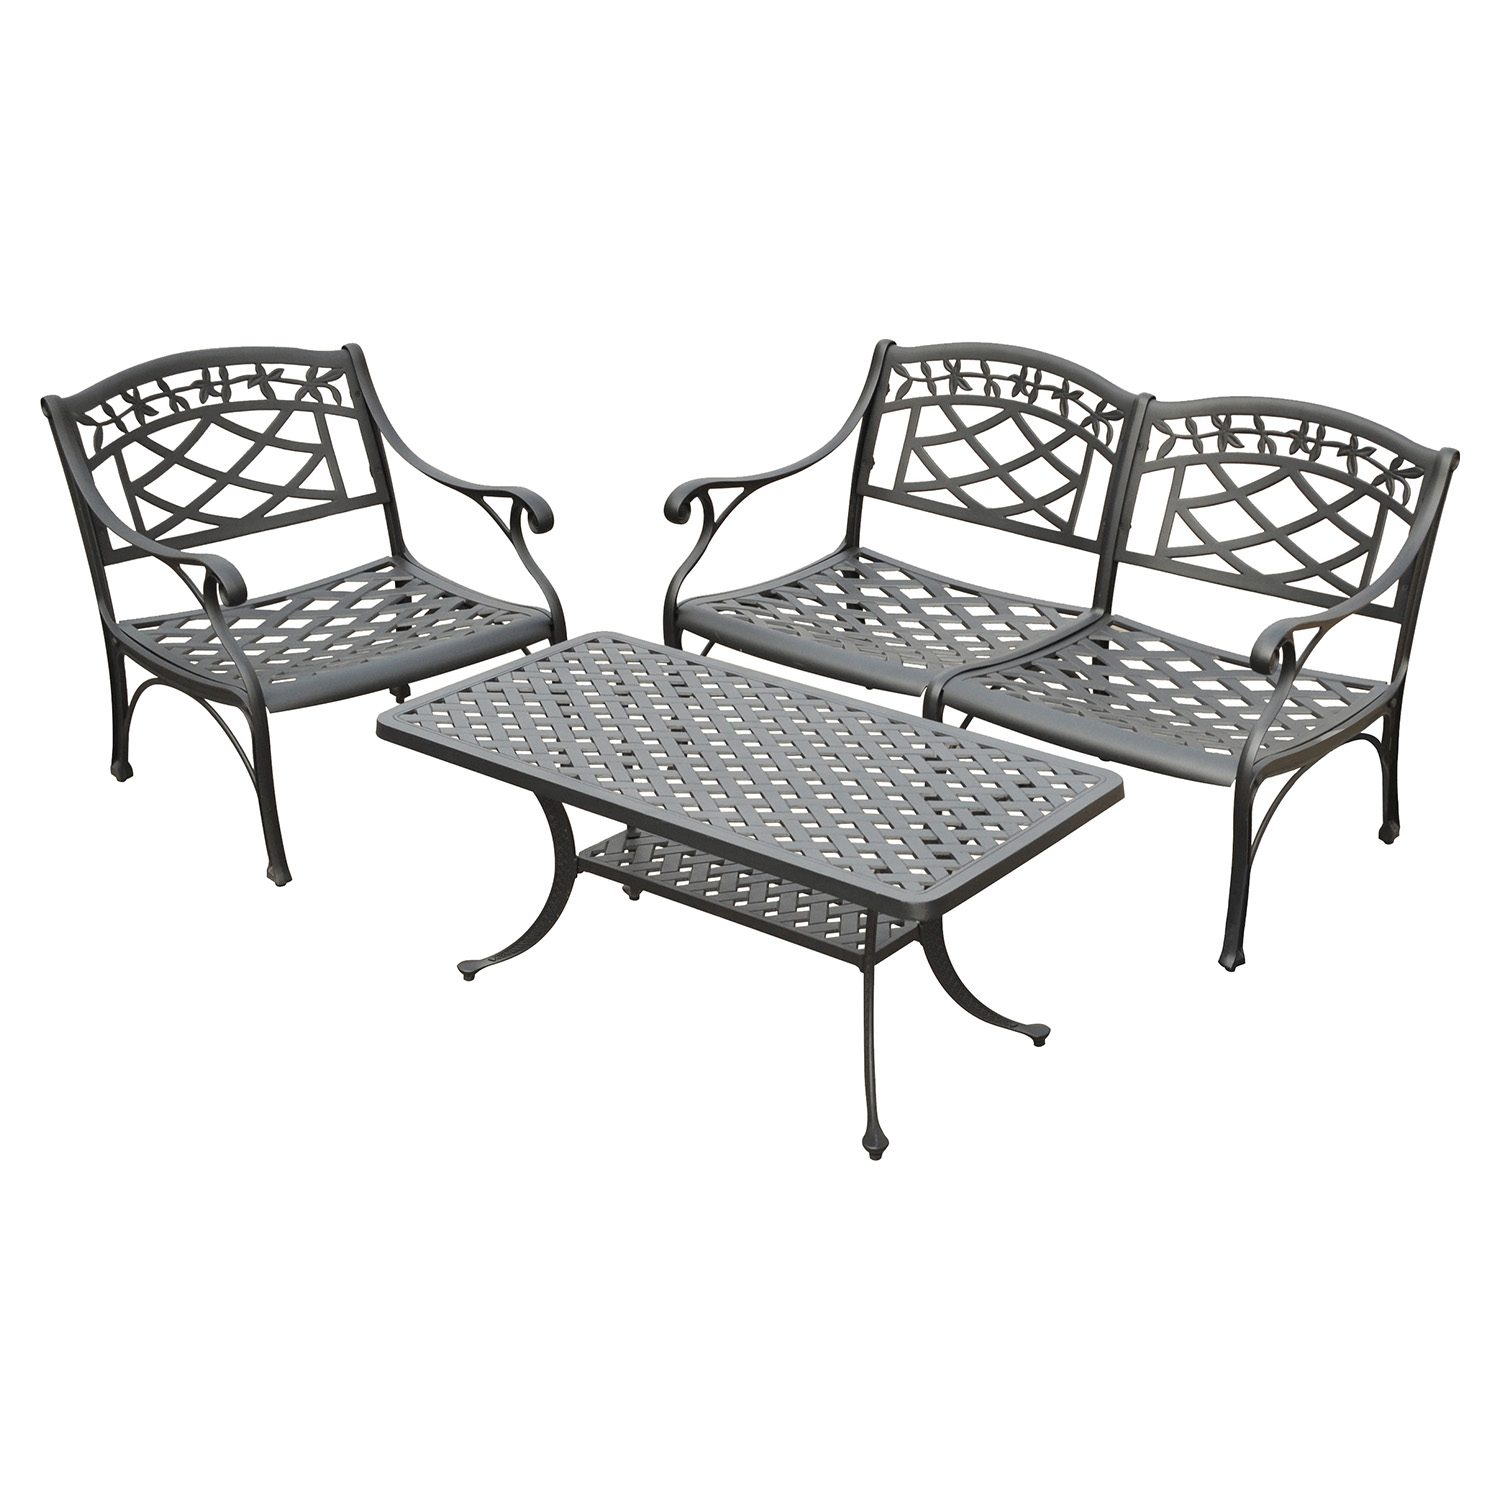 Sedona 3-Piece Conversation Seating Set - Charcoal Black - CROS-KO60003BK